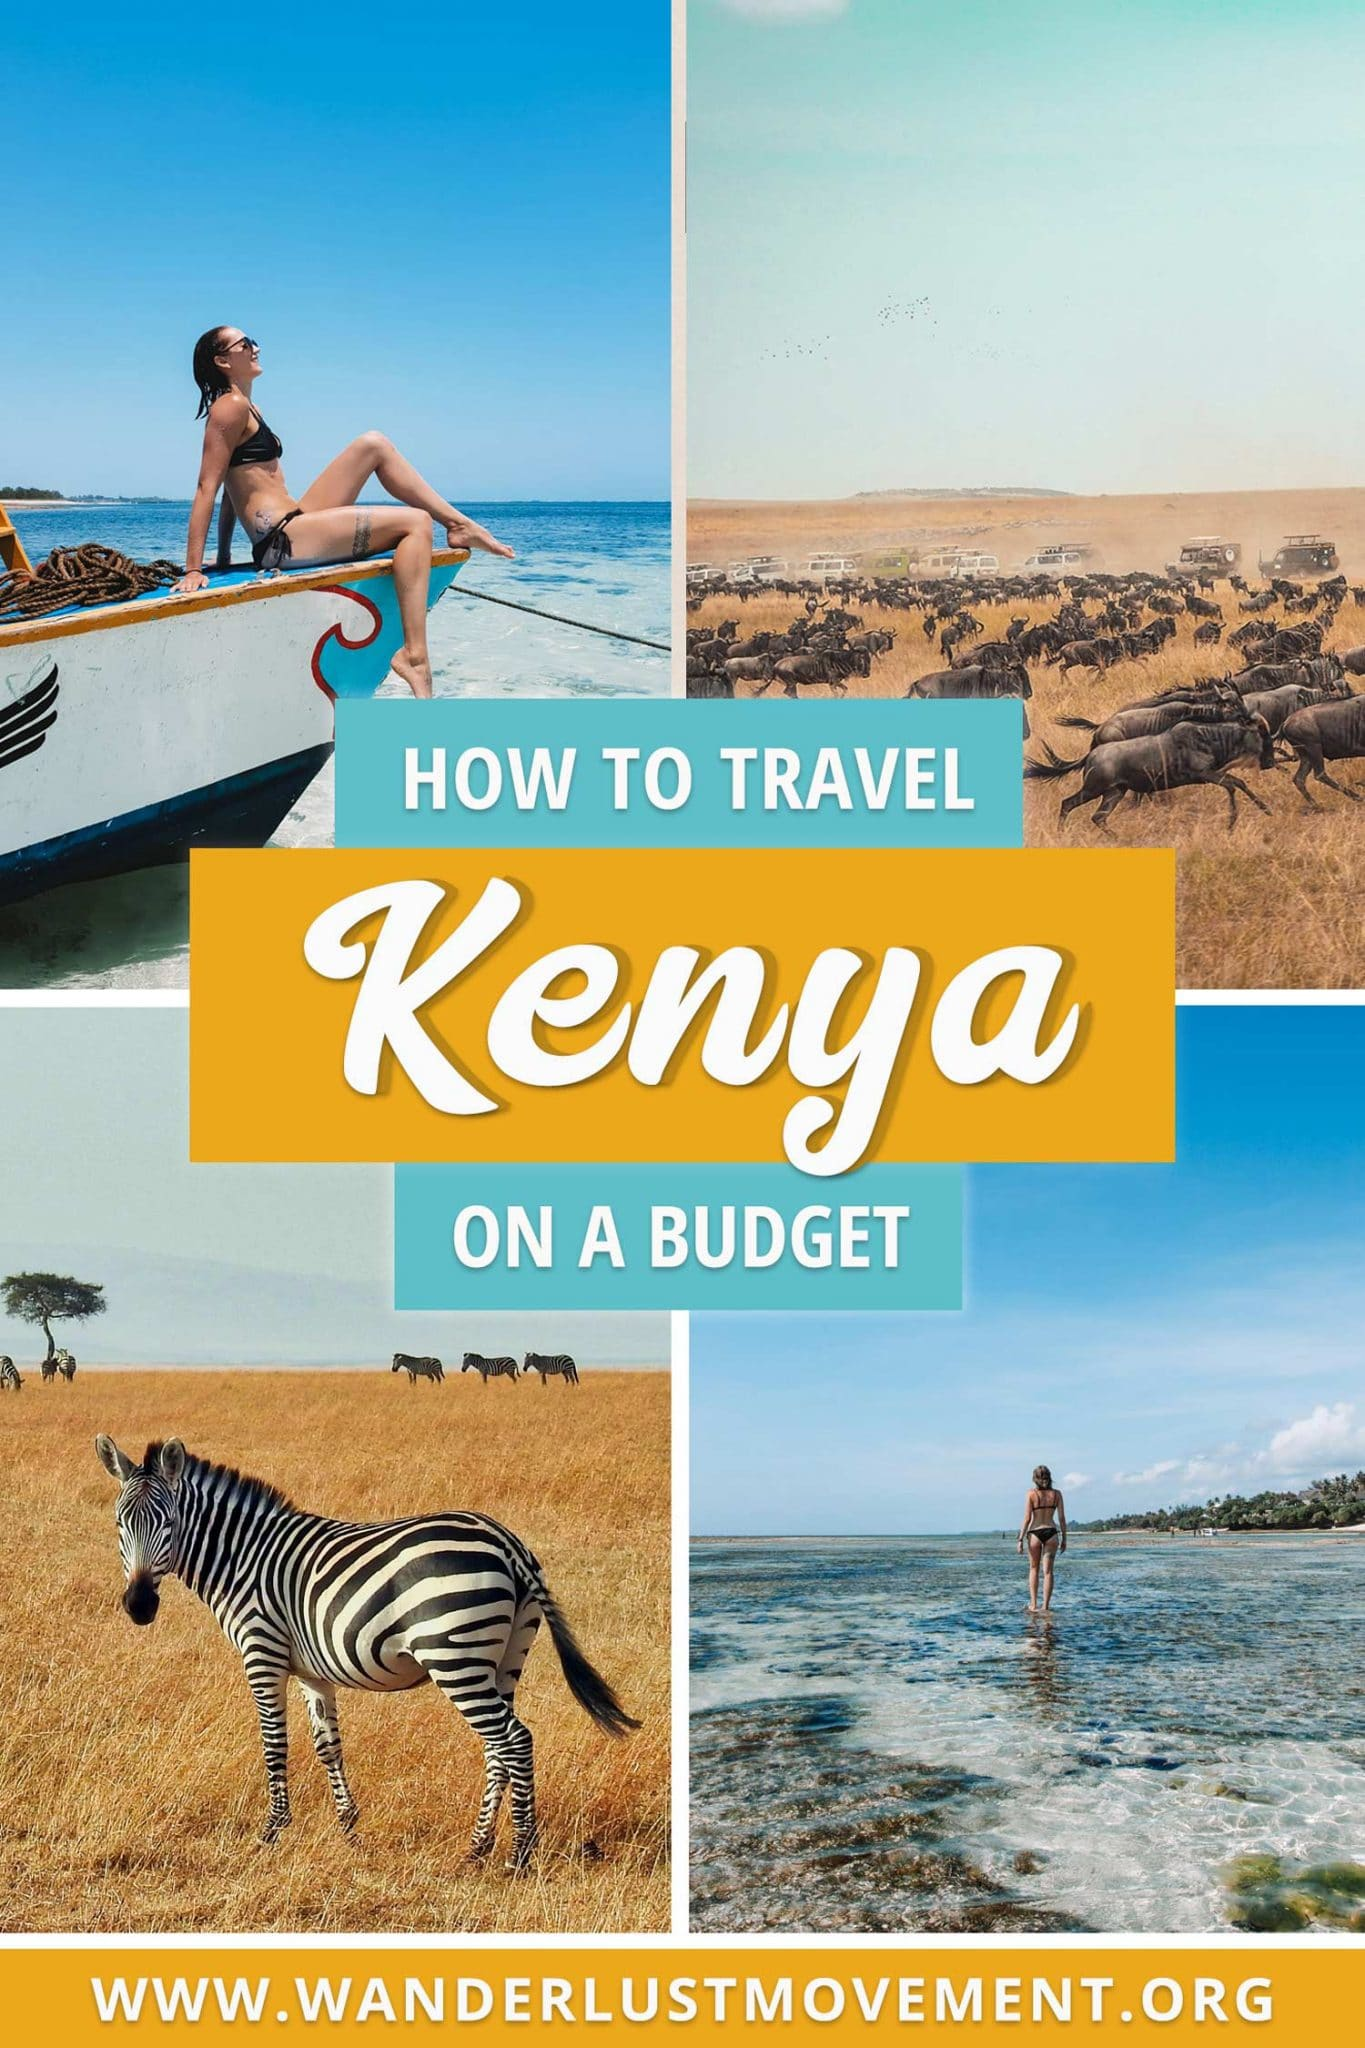 How to Travel Kenya on a Budget